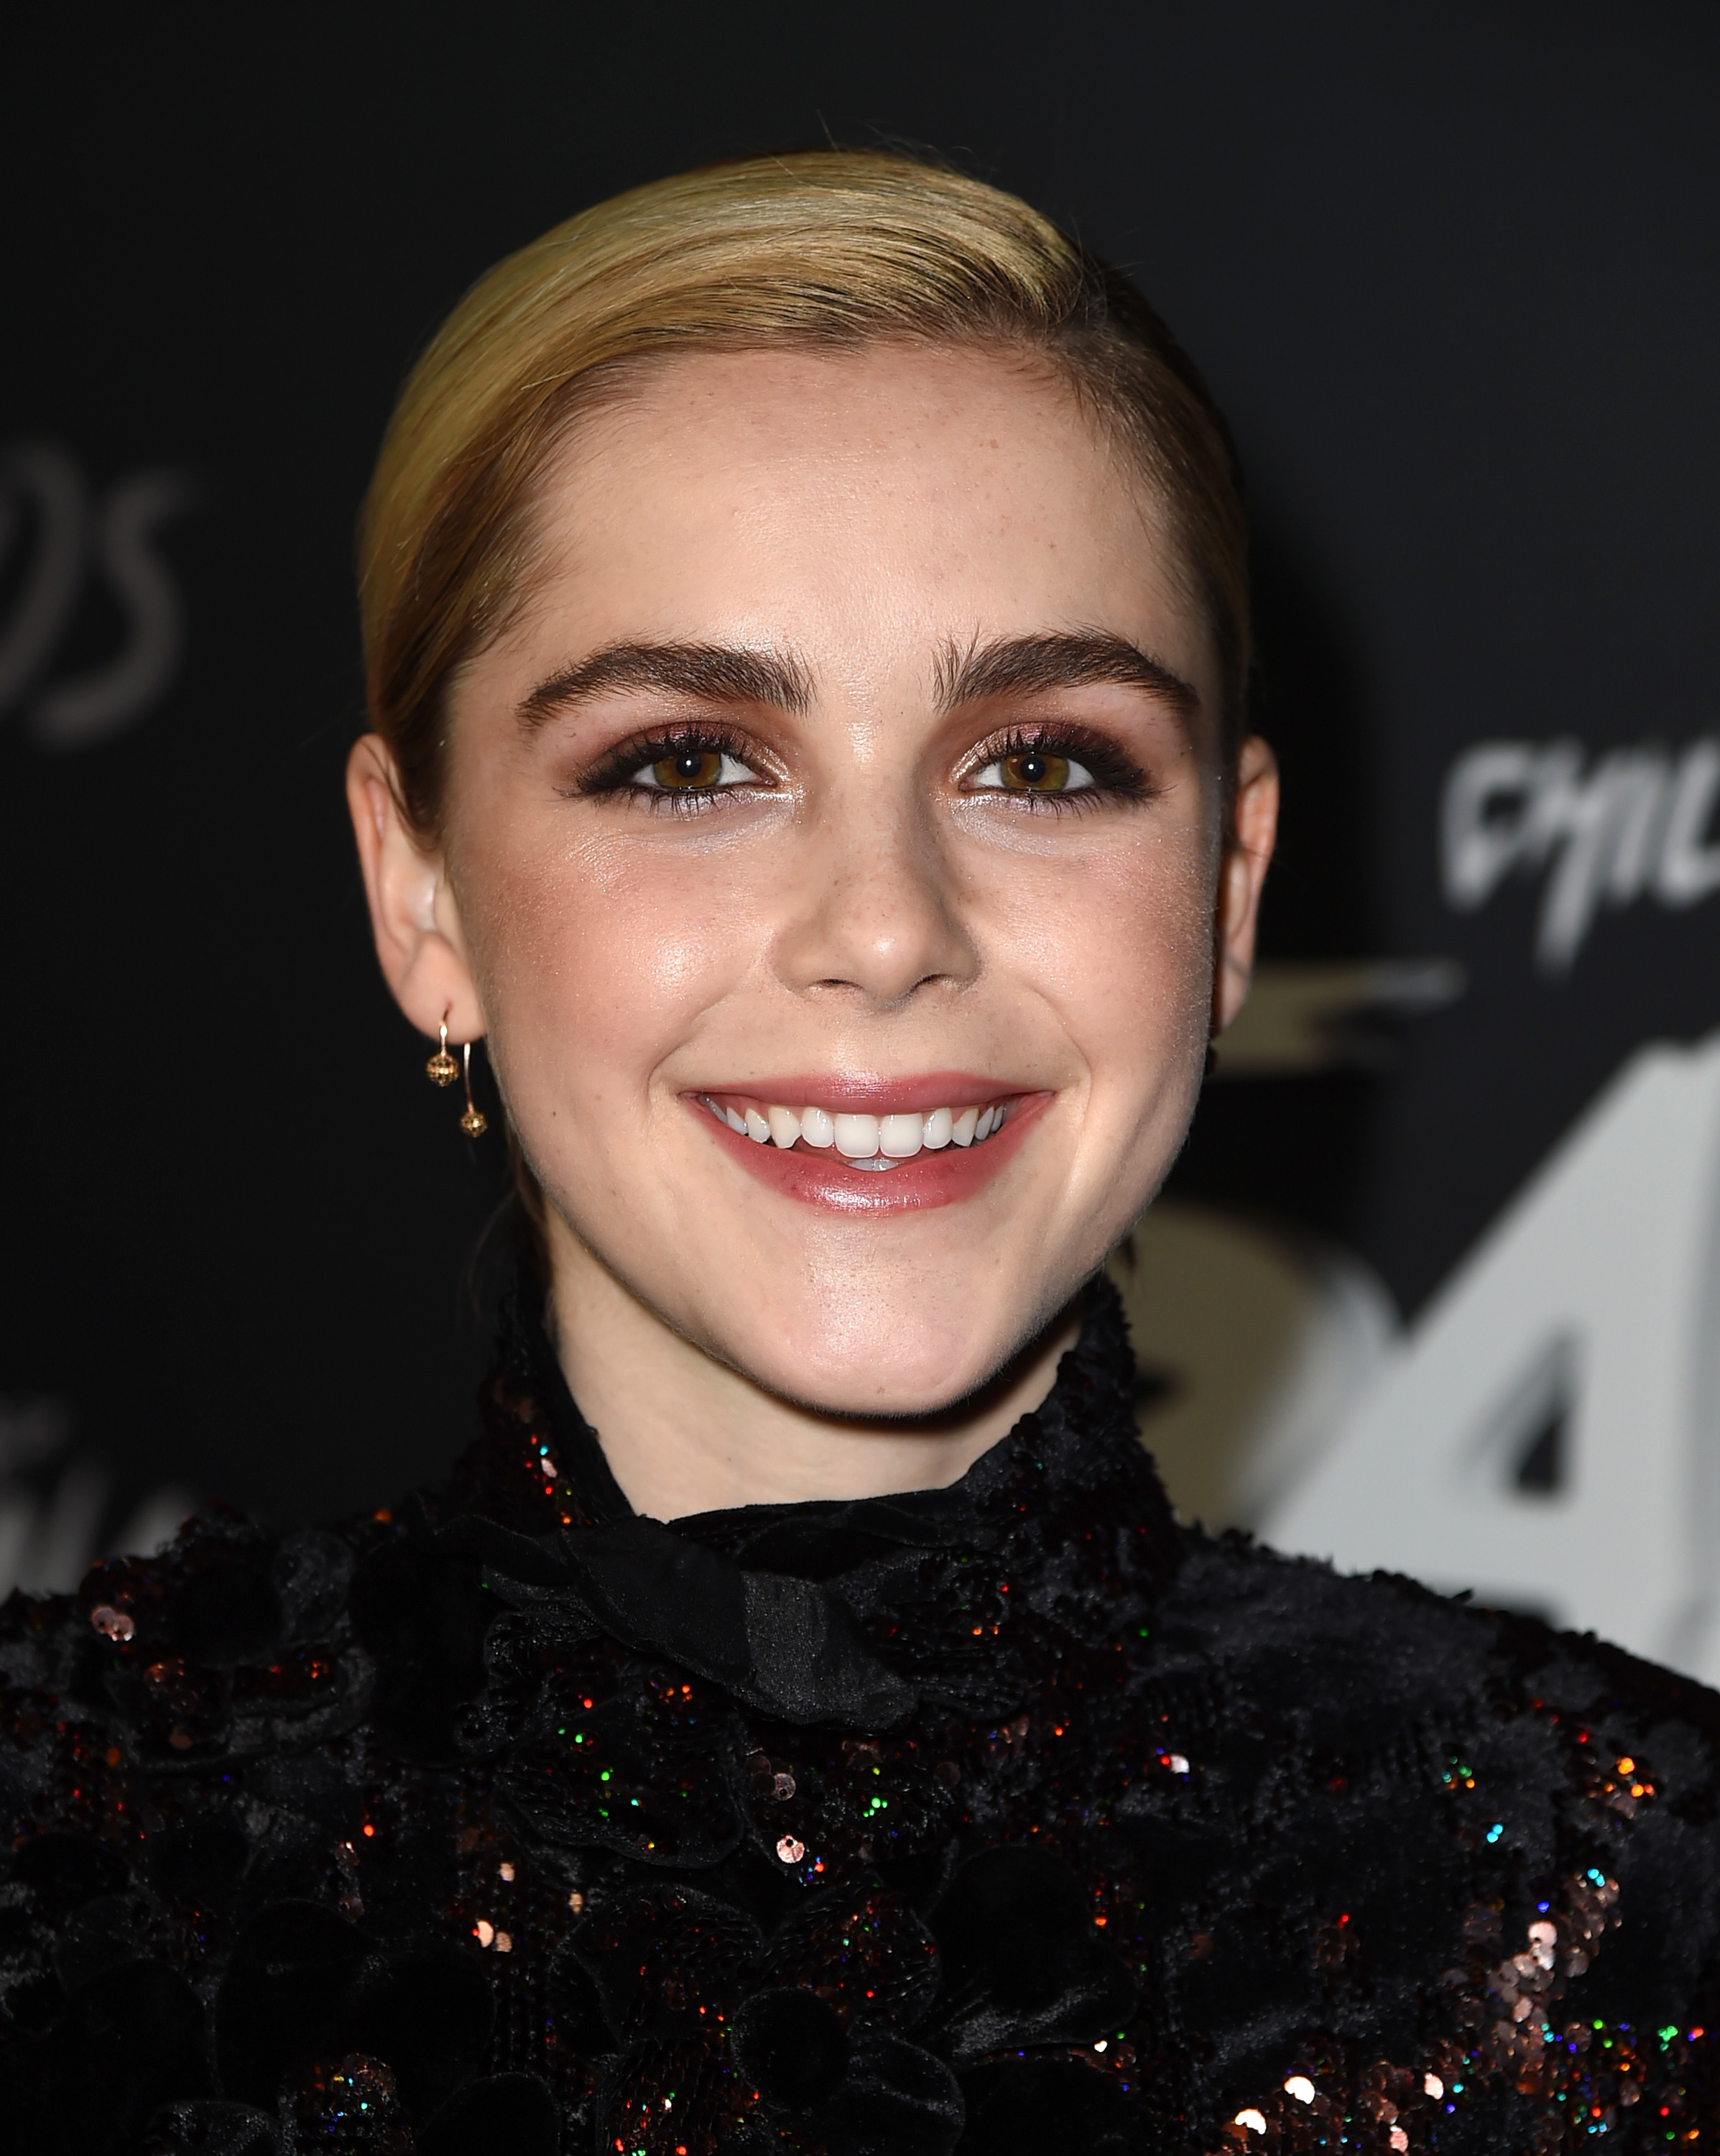 Kiernan Shipka arrives at the premiere of Netflix's 'Chilling Adventures Of Sabrina' at the Hollywood Athletic Club on October 19, 2018 in Los Angeles, California (Getty)